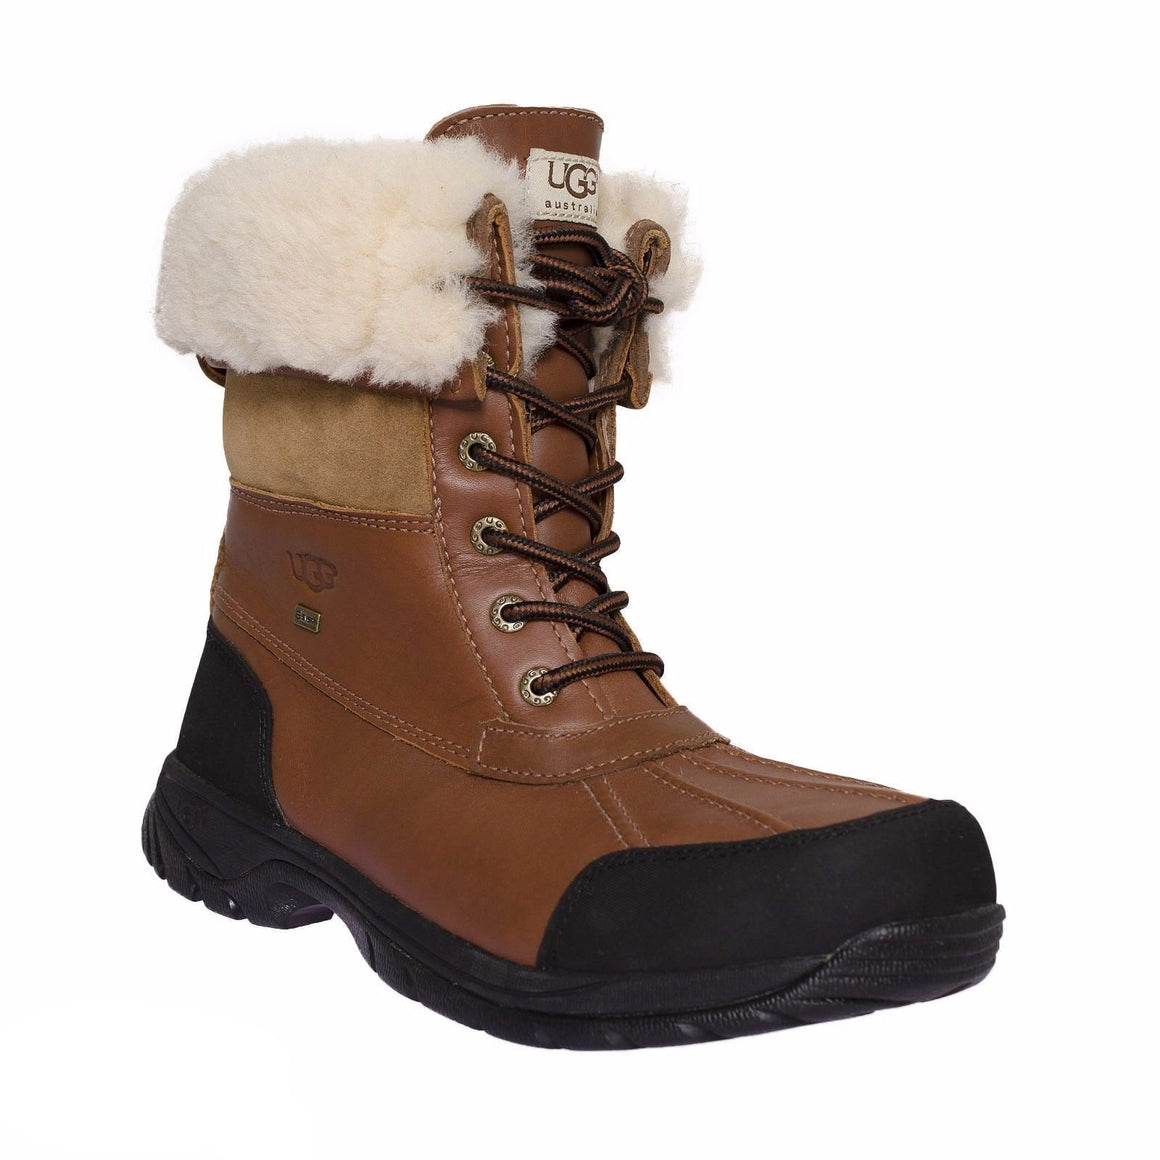 UGG Butte Worchester Boots